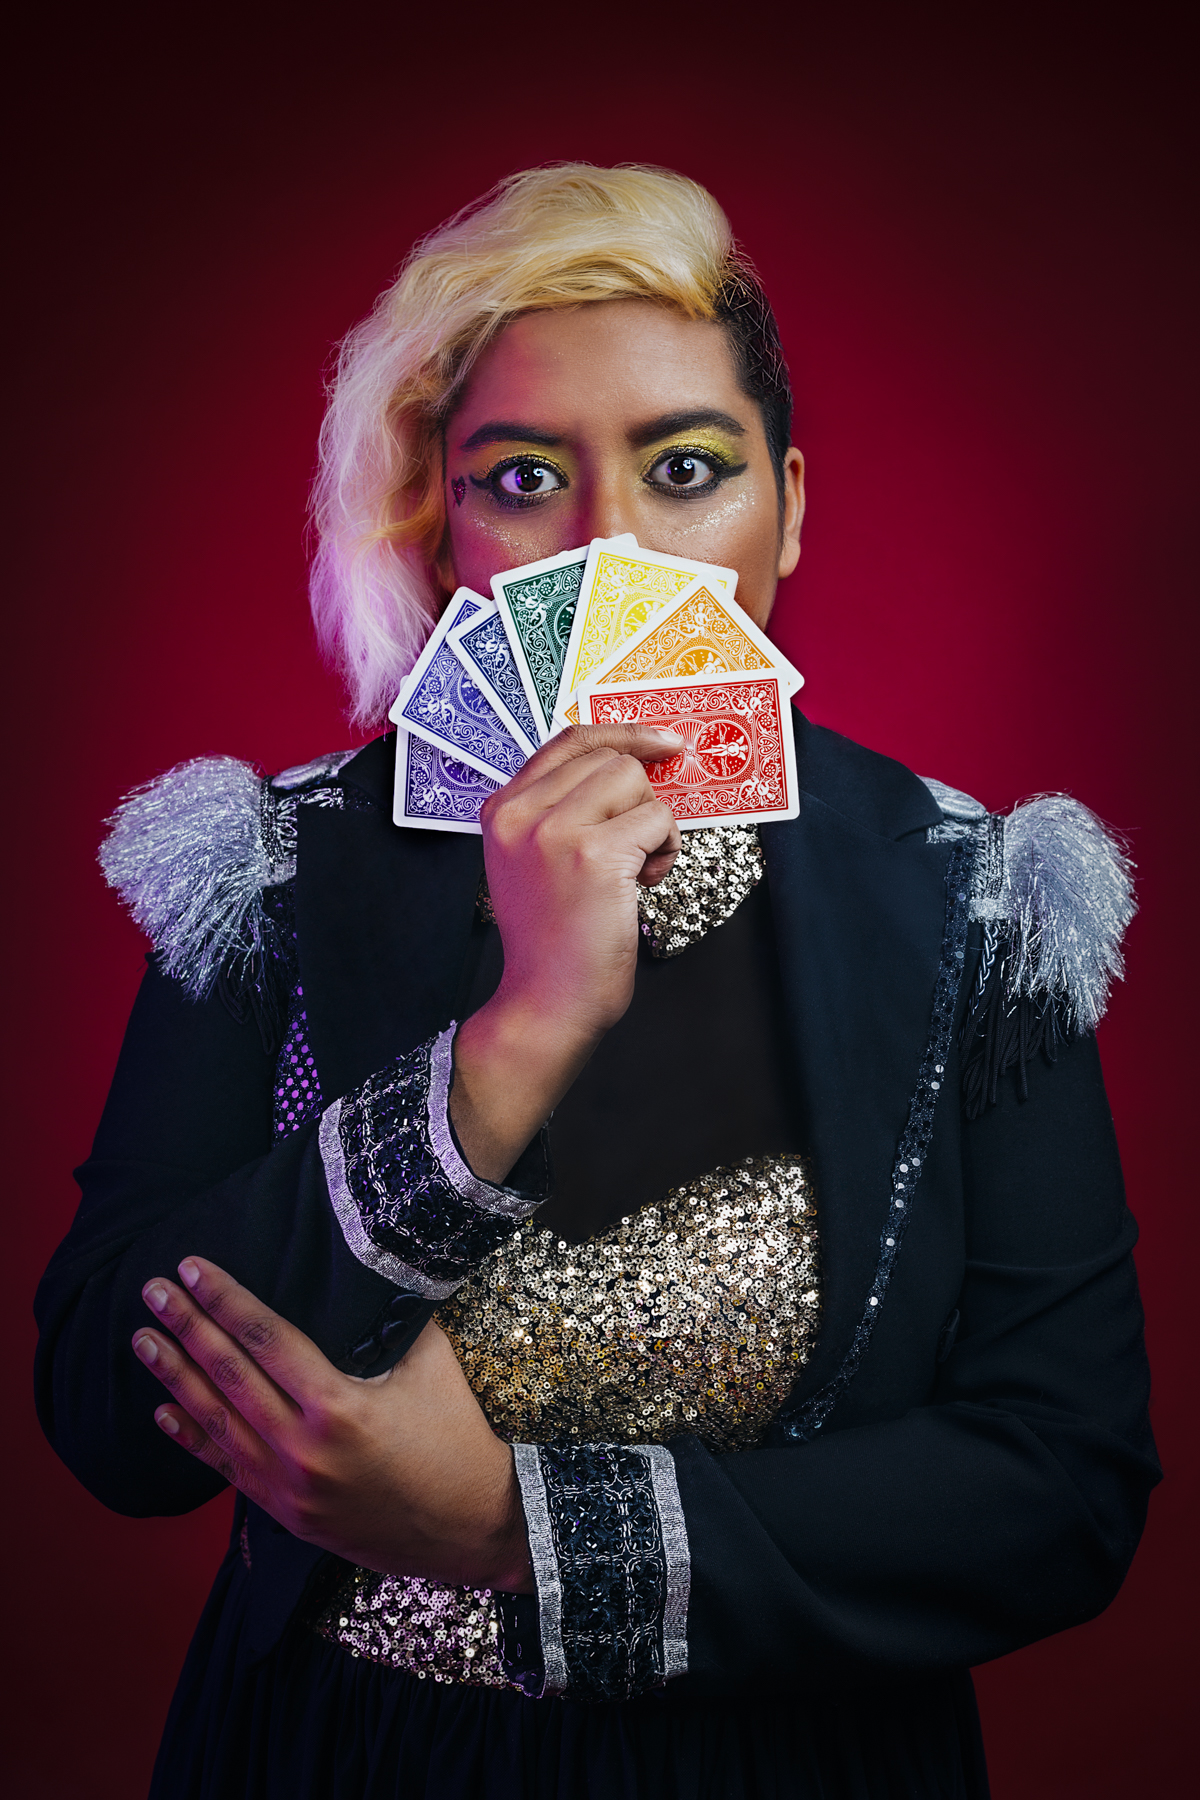 Queer Lady Magician Promo Photo by Alexis Desaulniers-Lea